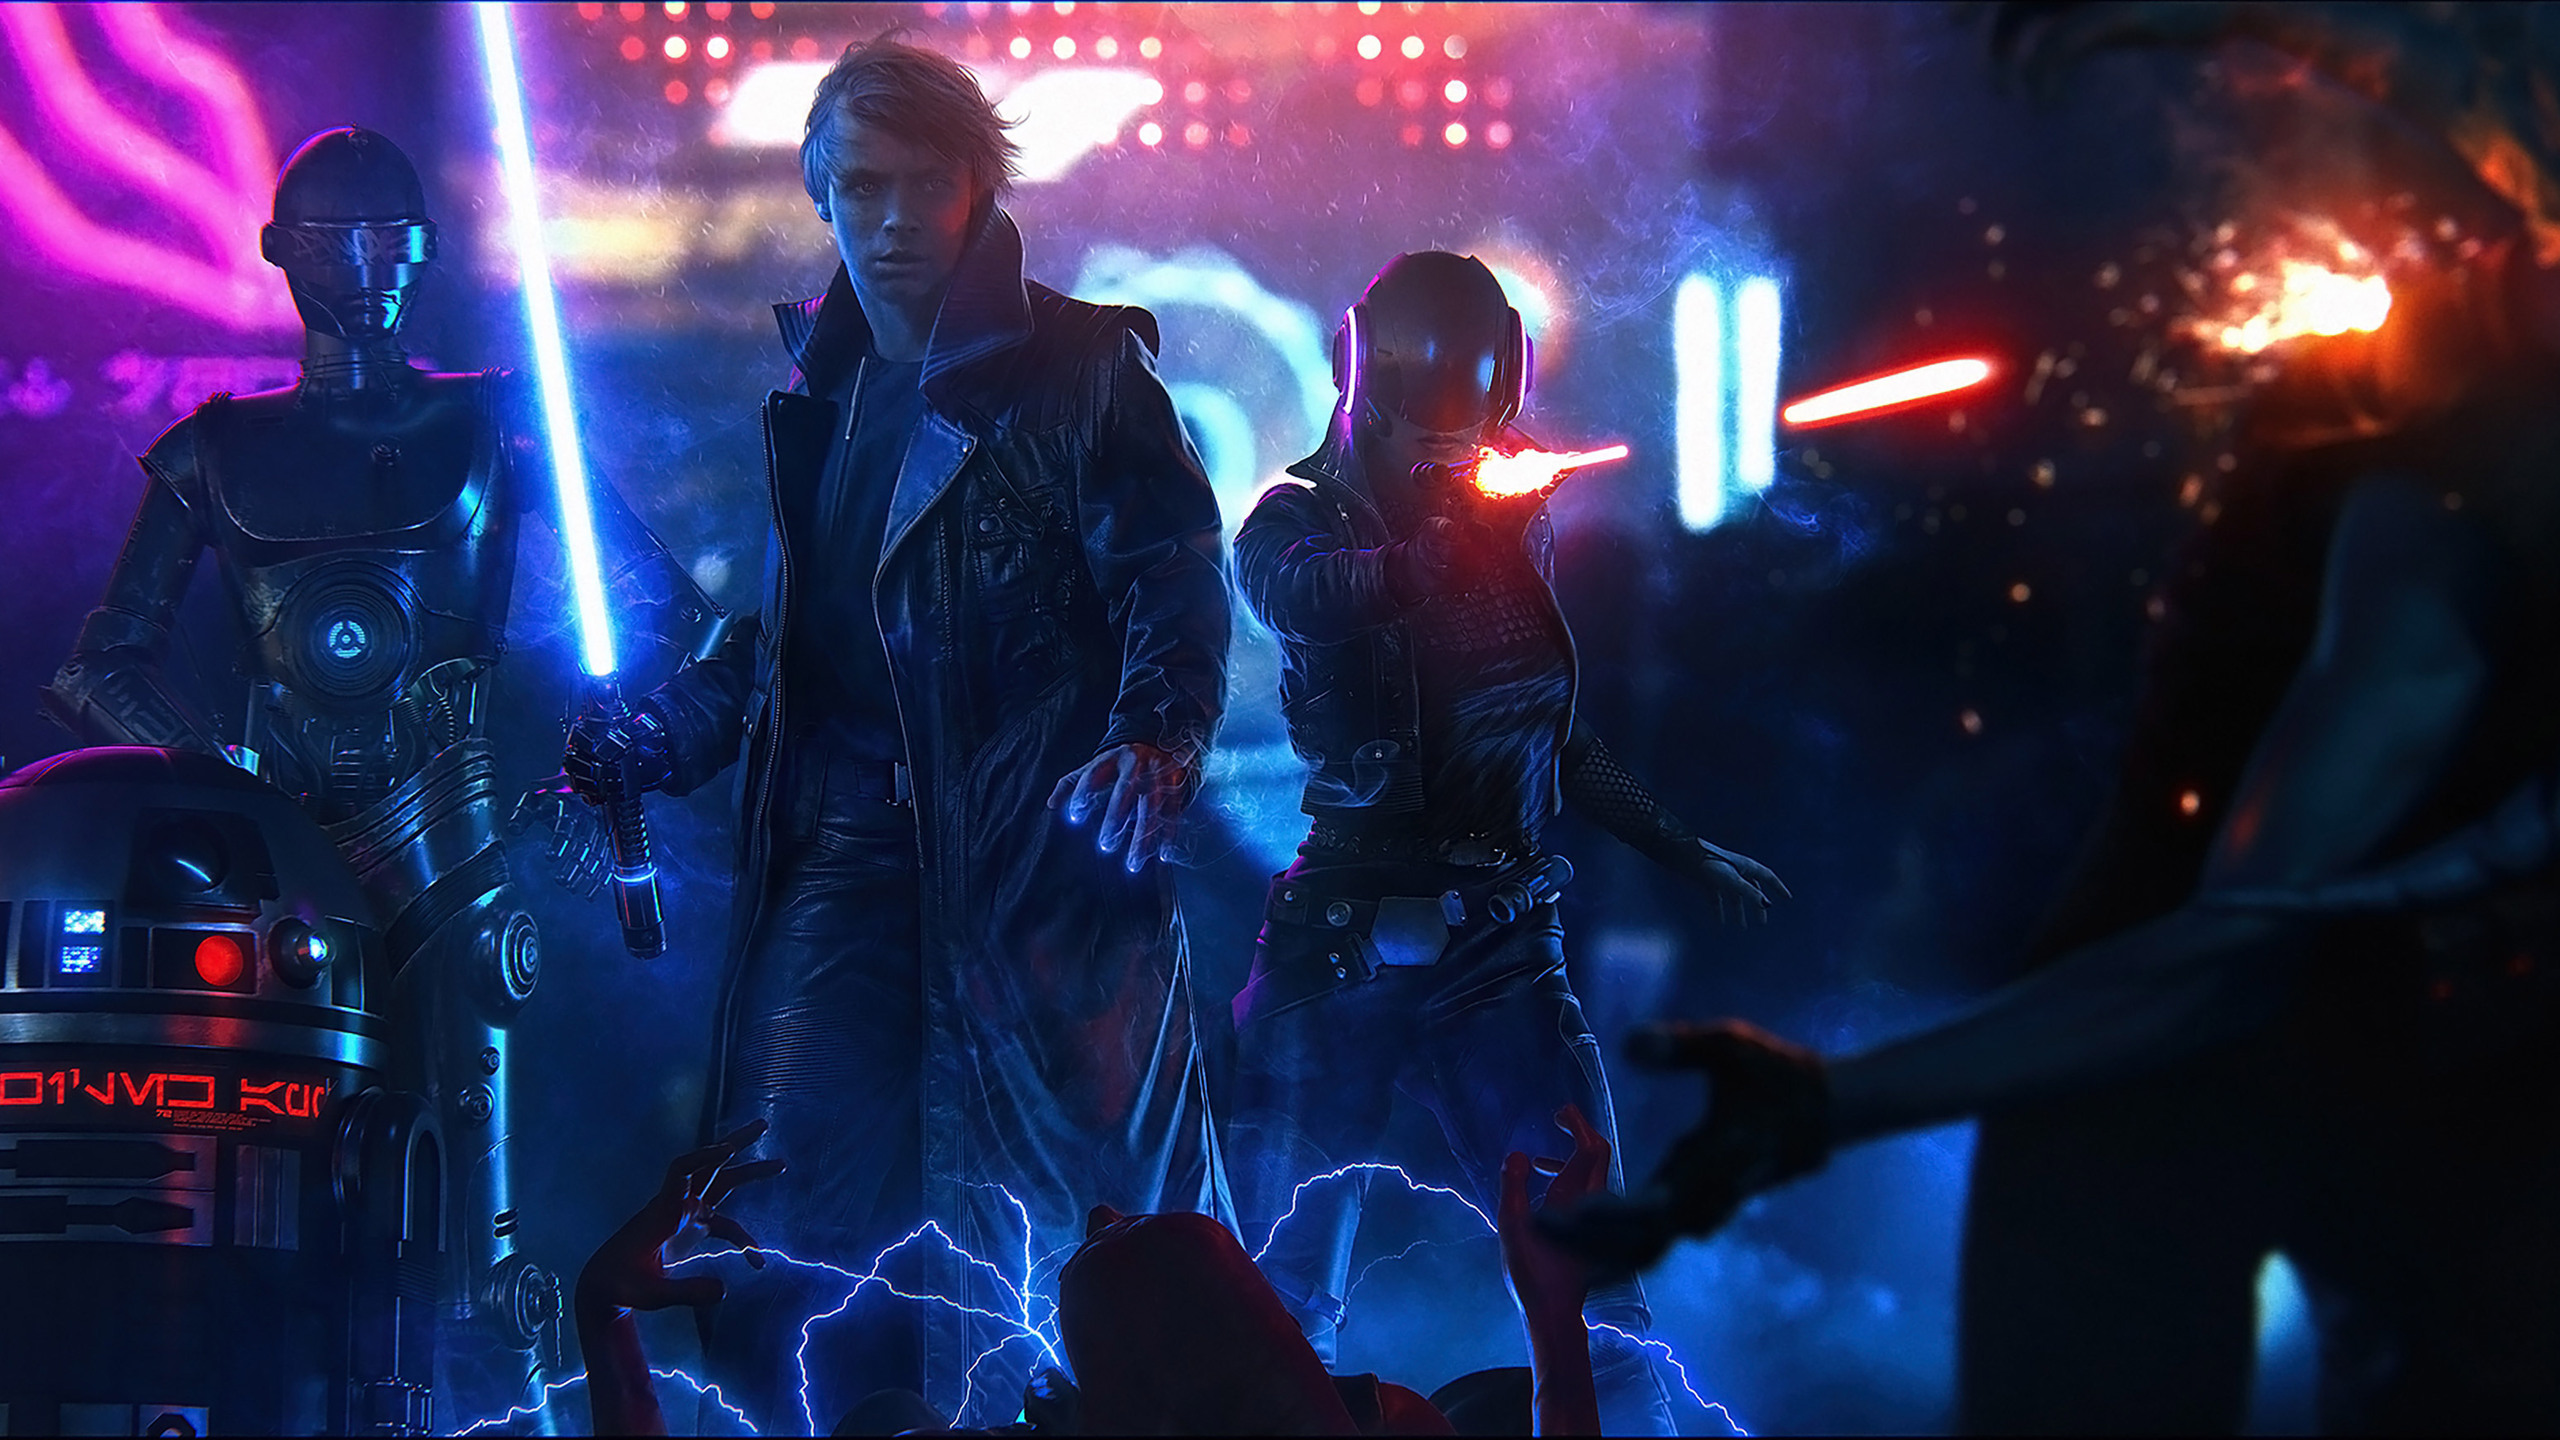 2560x1440 star wars cyberpunk 1440p resolution hd 4k